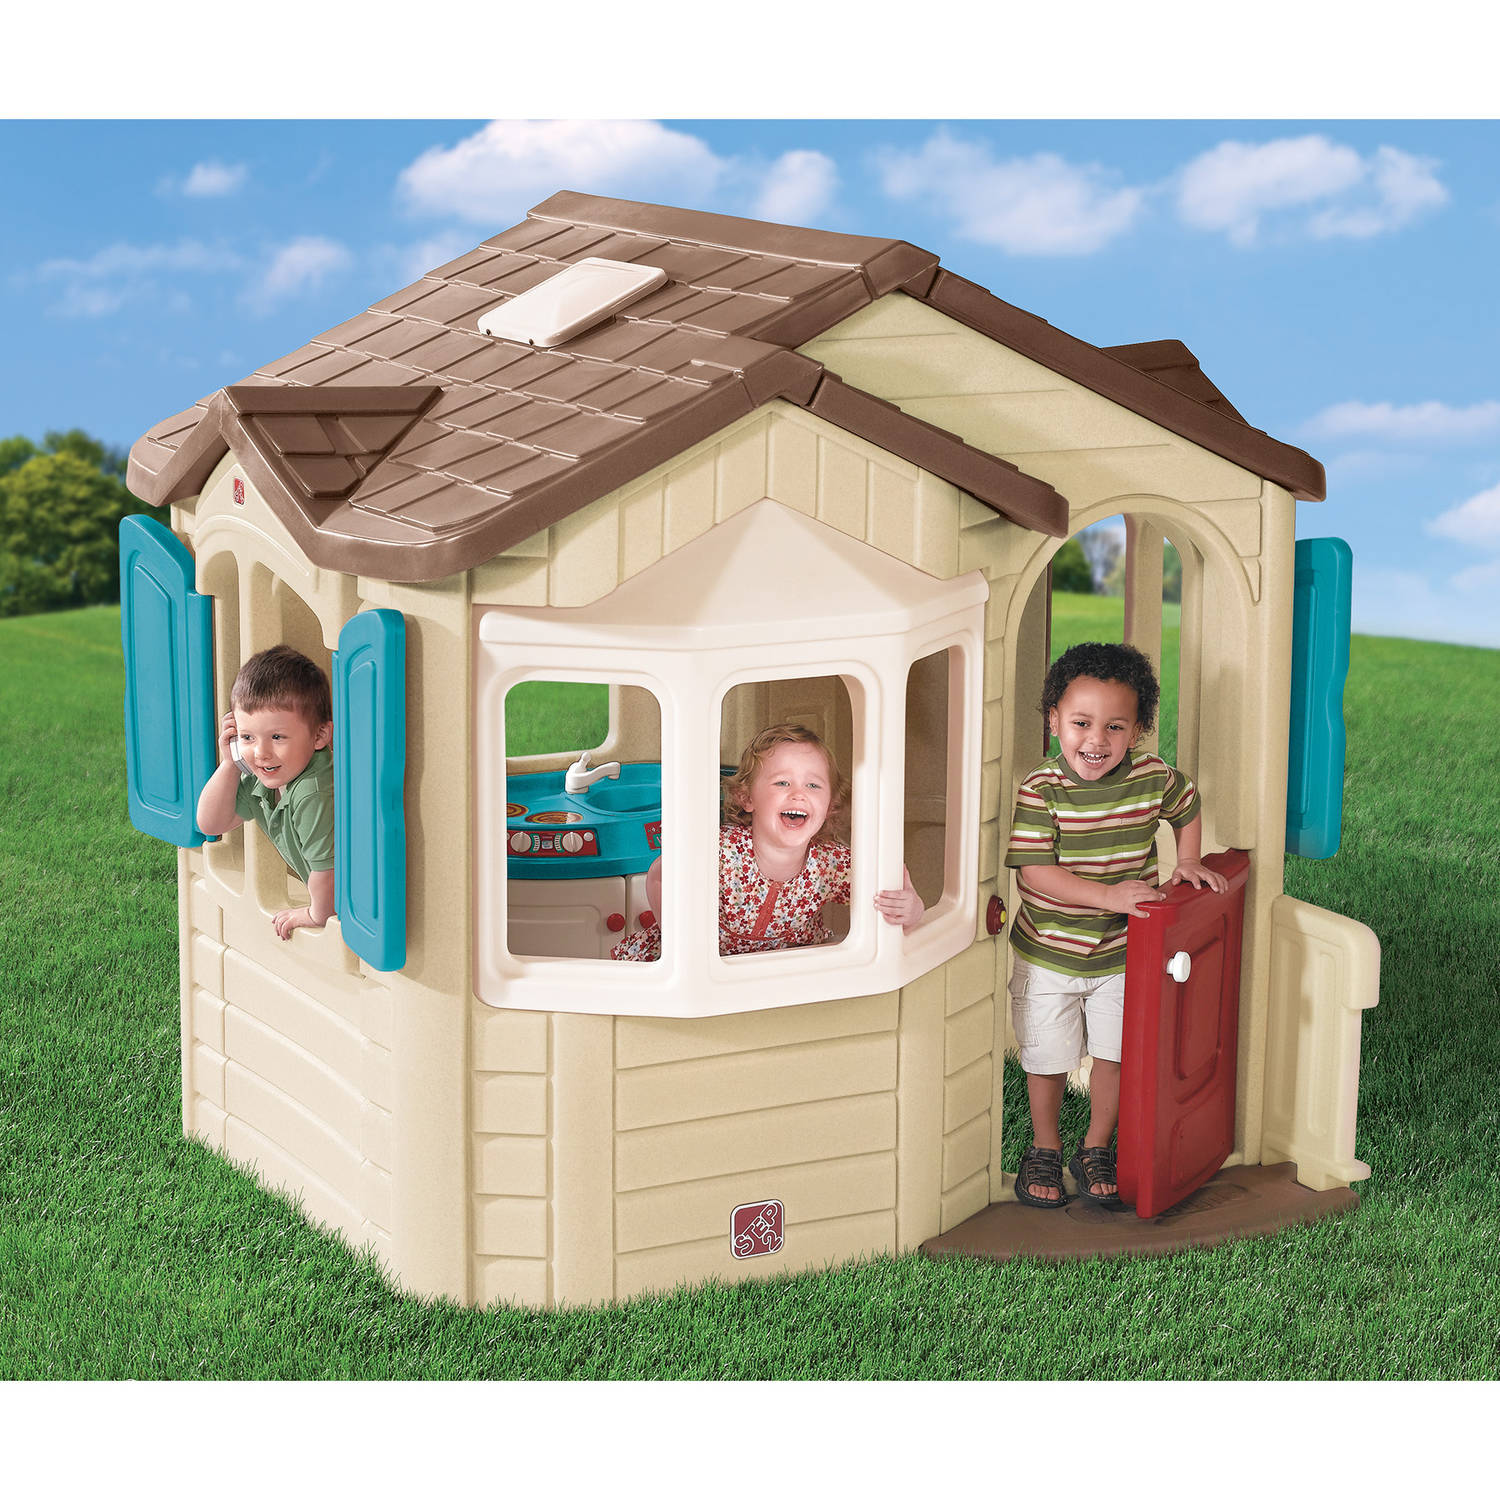 Step2 Naturally Playful Welcome Home Playhouse for Toddlers by Step2